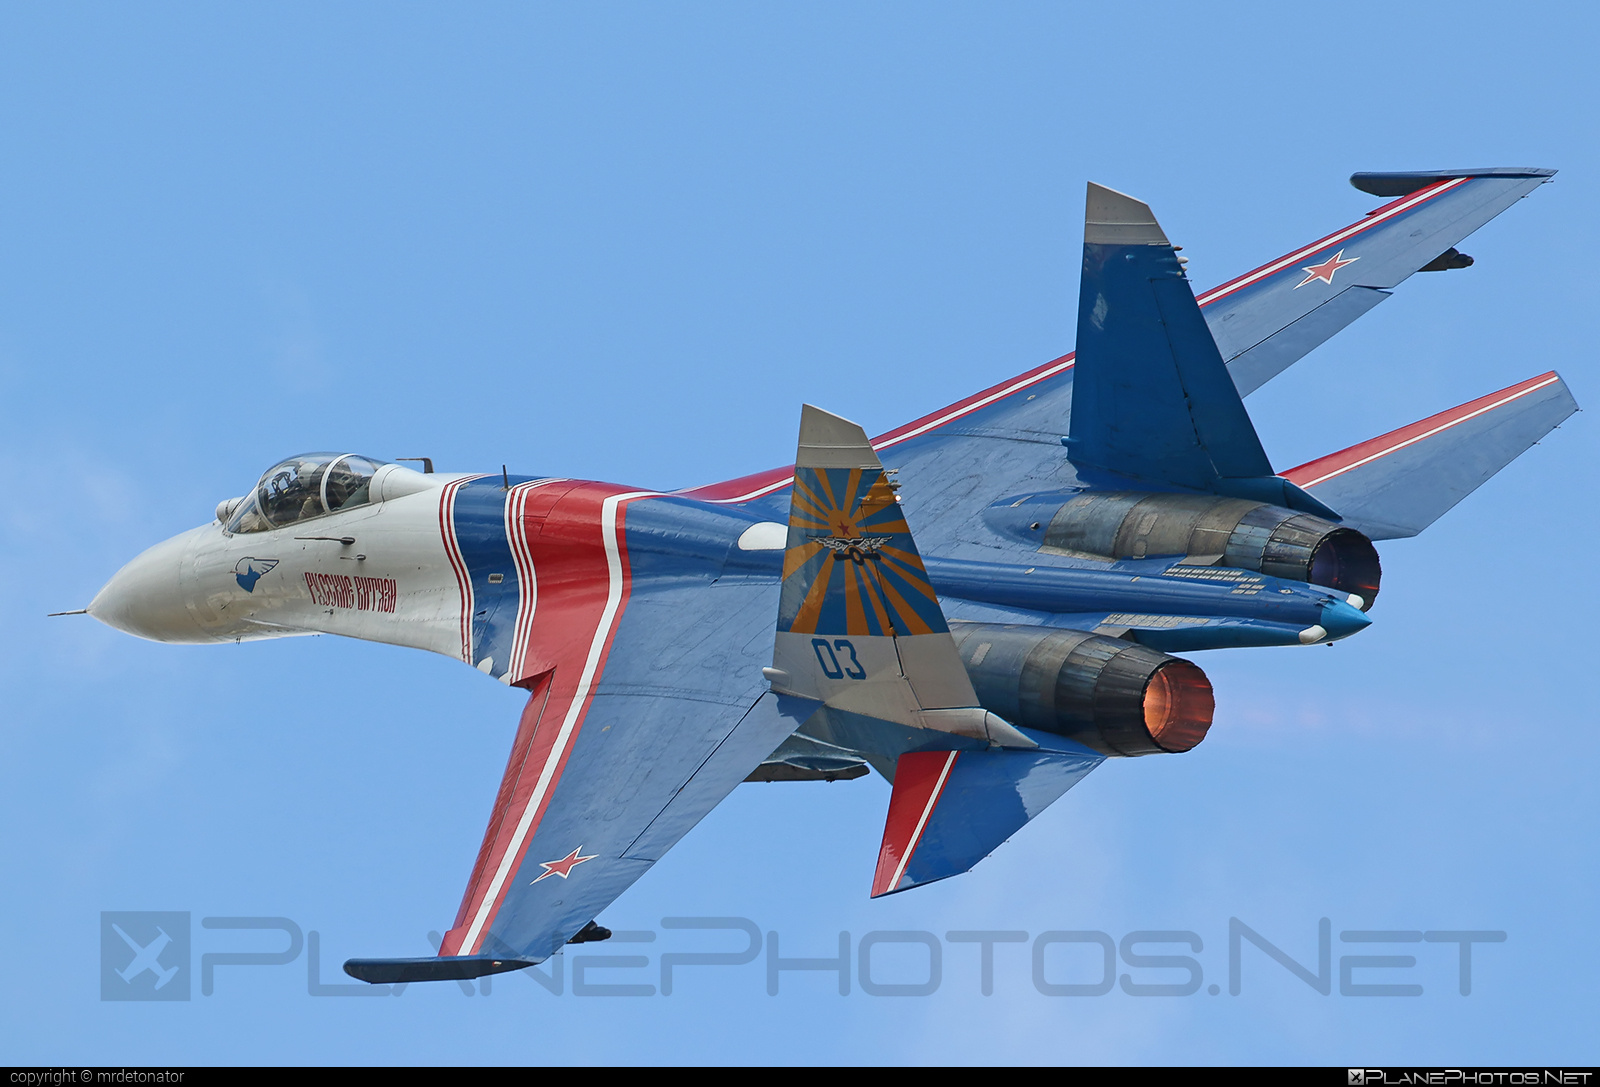 Sukhoi Su-27P - 03 operated by Voyenno-vozdushnye sily Rossii (Russian Air Force) #su27 #su27p #sukhoi #sukhoi27